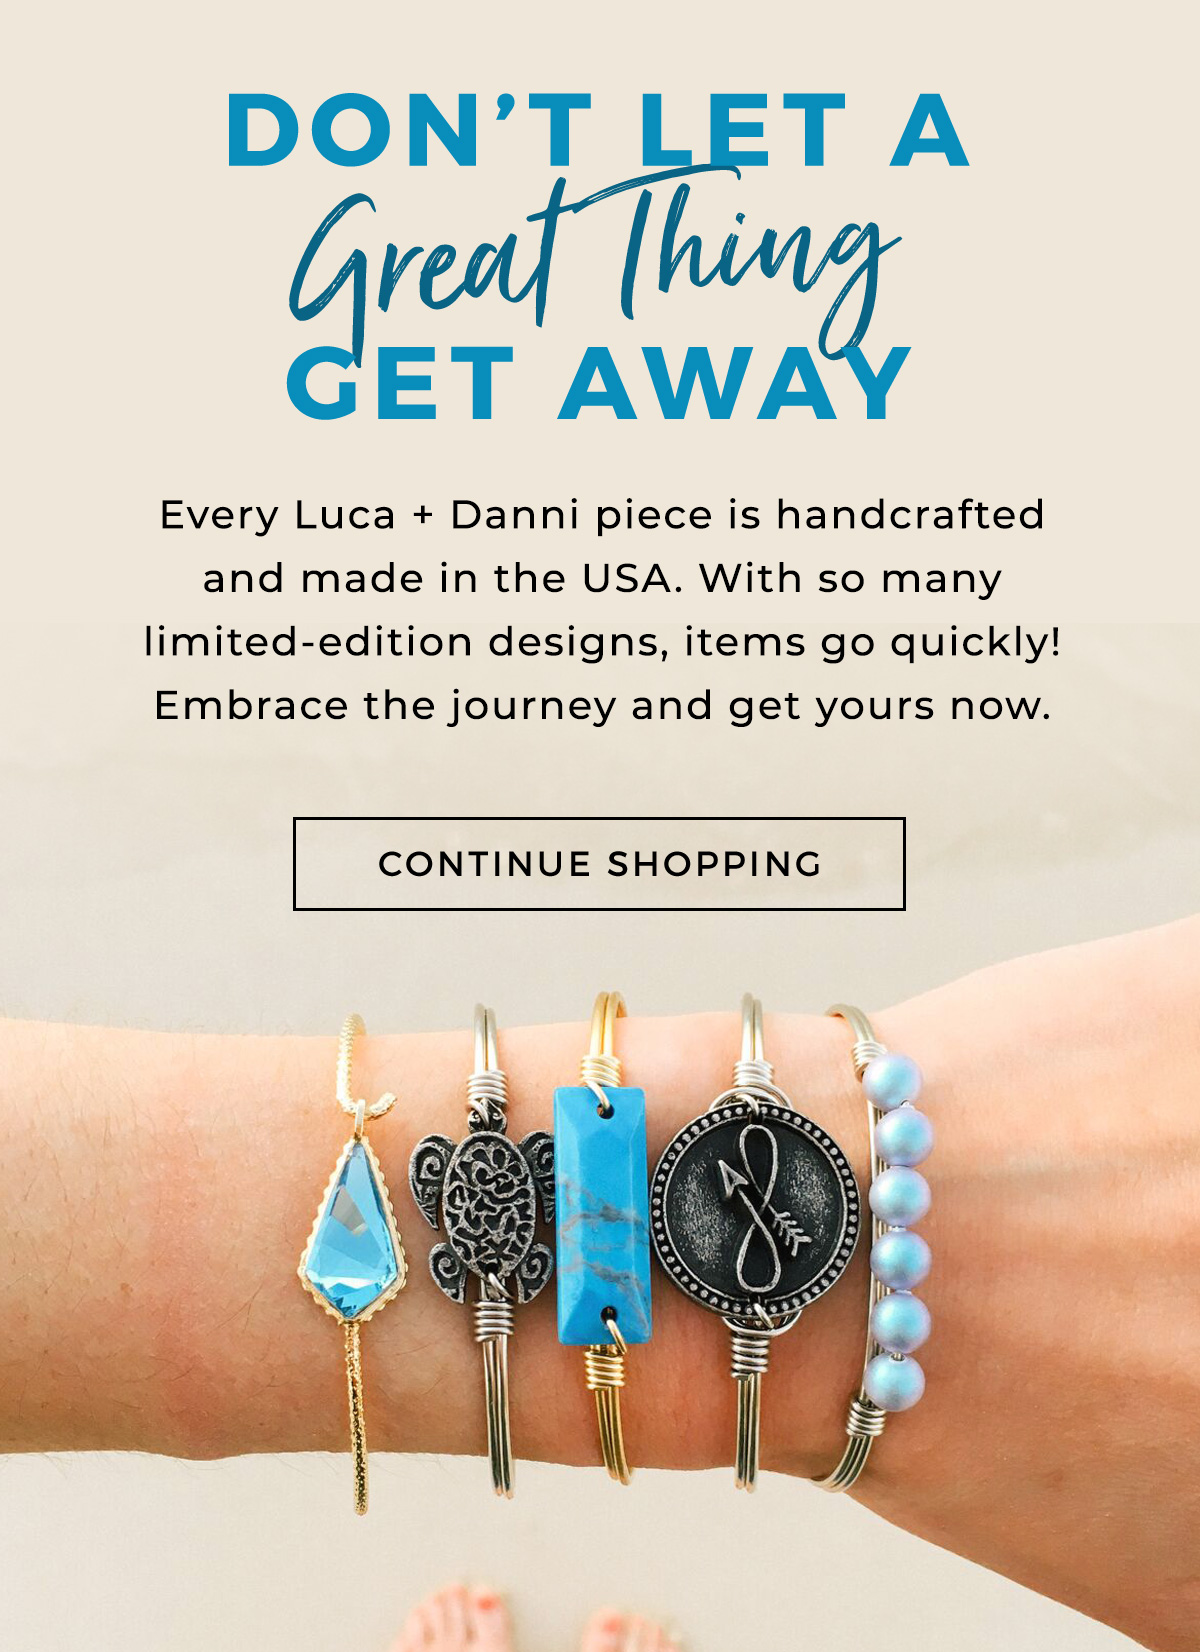 Don't Let a Great Thing Get Away  Every Luca + Danni piece is handcrafted and made in the USA. With so many limited-edition designs, items go quickly! Embrace the journey and get yours now.  CONTINUE SHOPPING